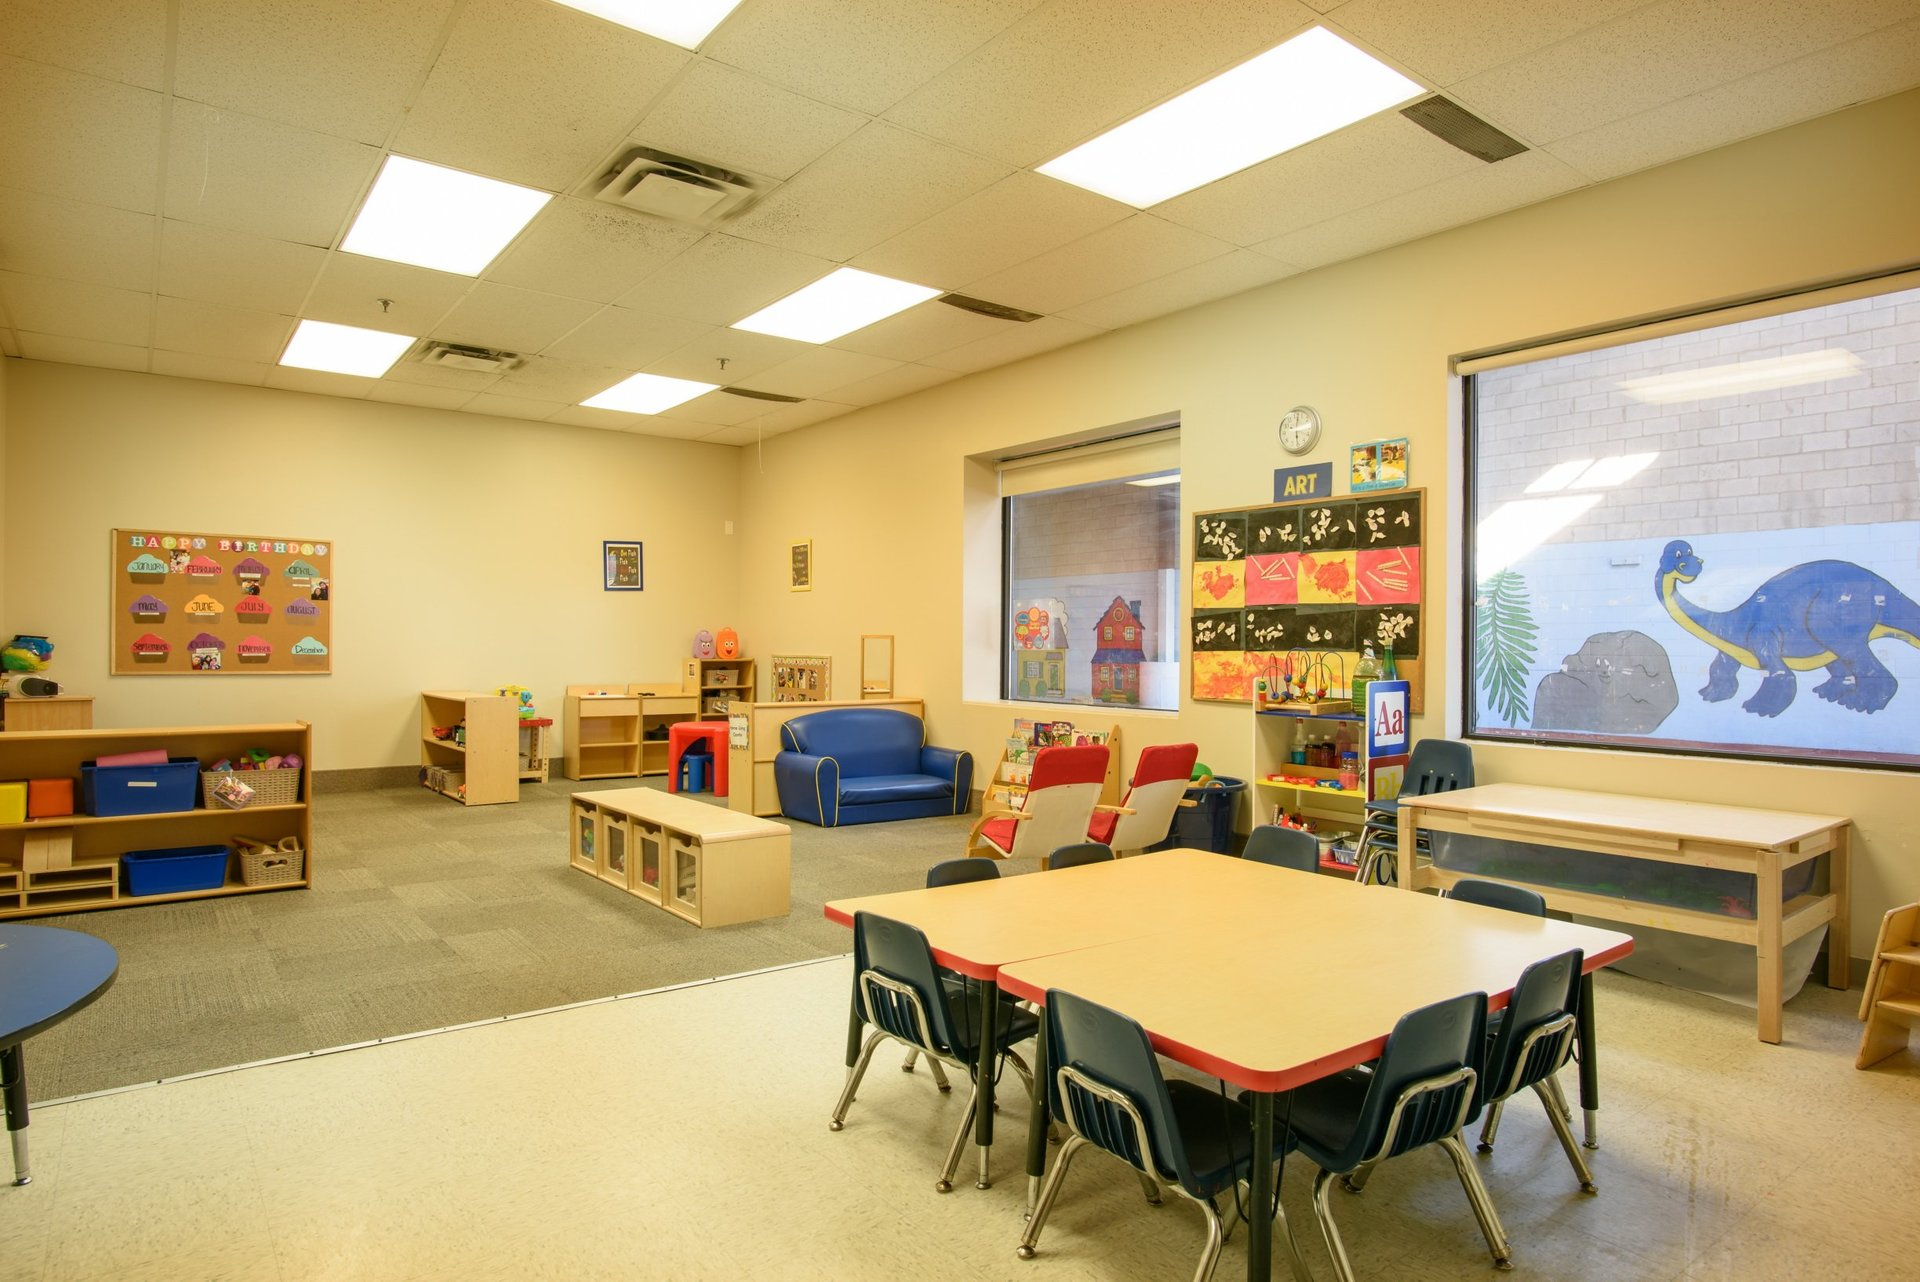 Daycare Mississauga Preschool Child Learning Centre